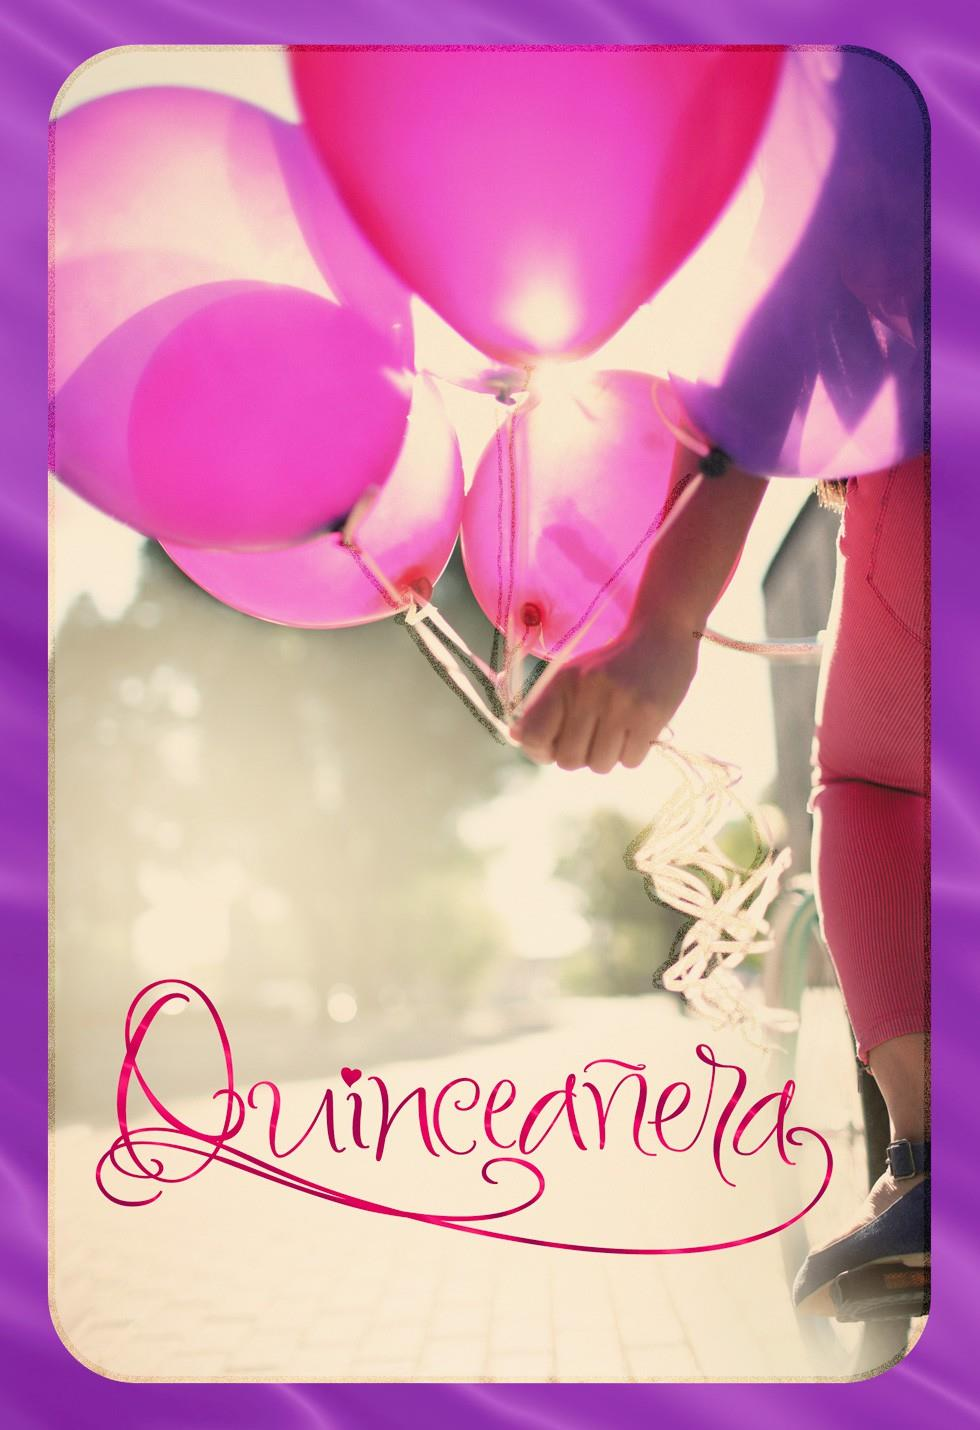 For a smiling quinceaera card greeting cards hallmark for a smiling quinceaera card m4hsunfo Image collections